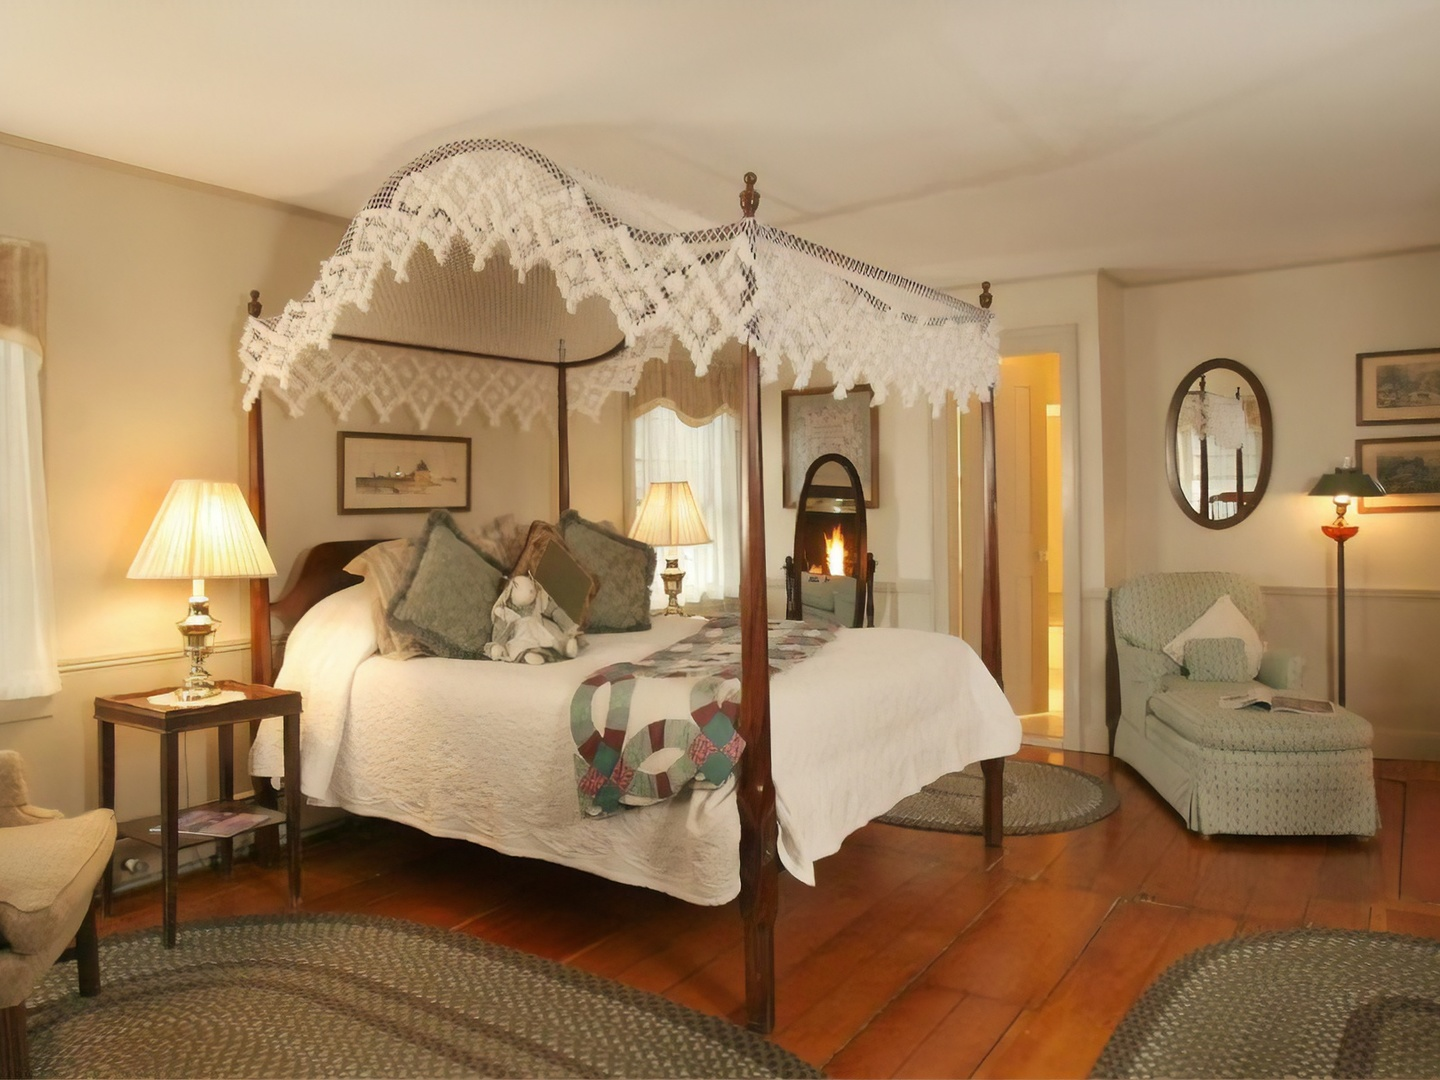 A bedroom with a bed and a chair in a room at Rabbit Hill Inn.